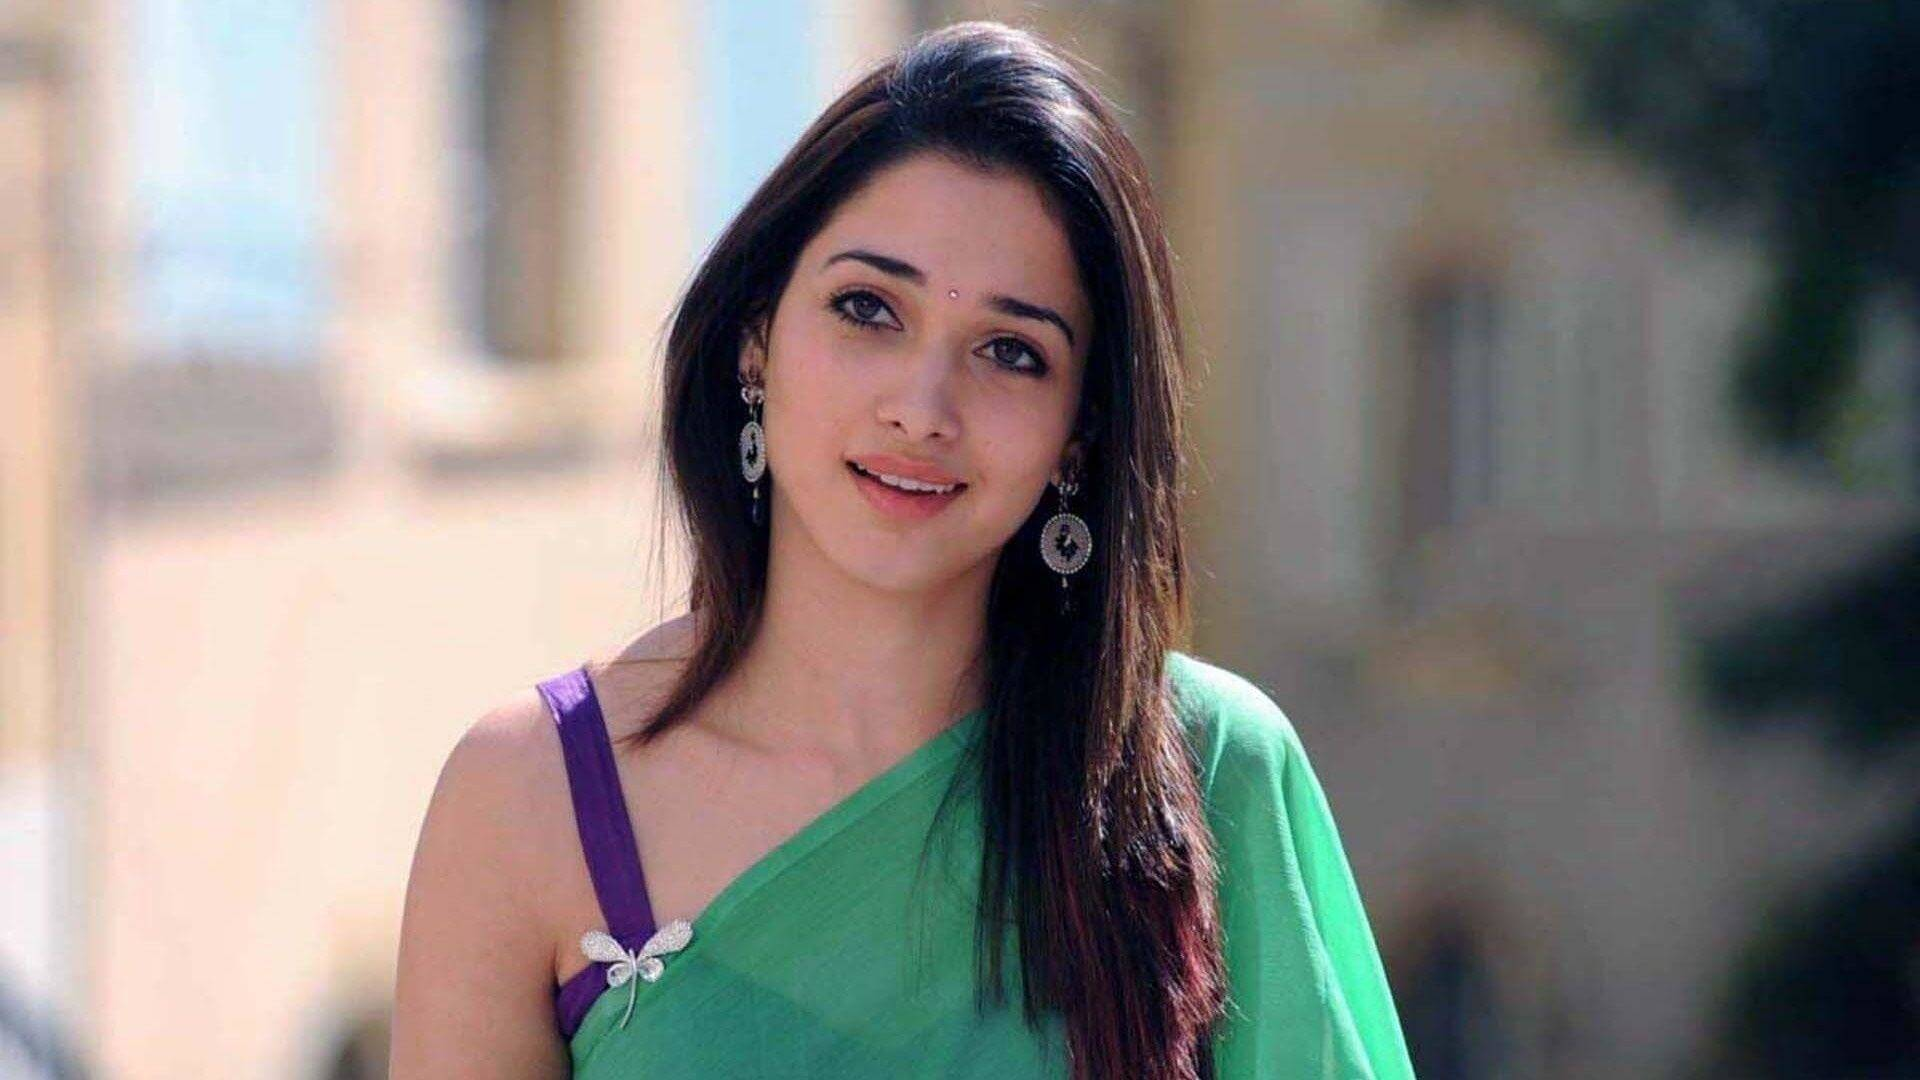 Tamannaah Bhatia Photos(images), Height, Biography, Movies, Date Of Birth, House, Details, Marriage, Boyfriend, Net Worth, Education, Instagram, Facebook, Twitter, Wiki, Imdb, Youtube (12)